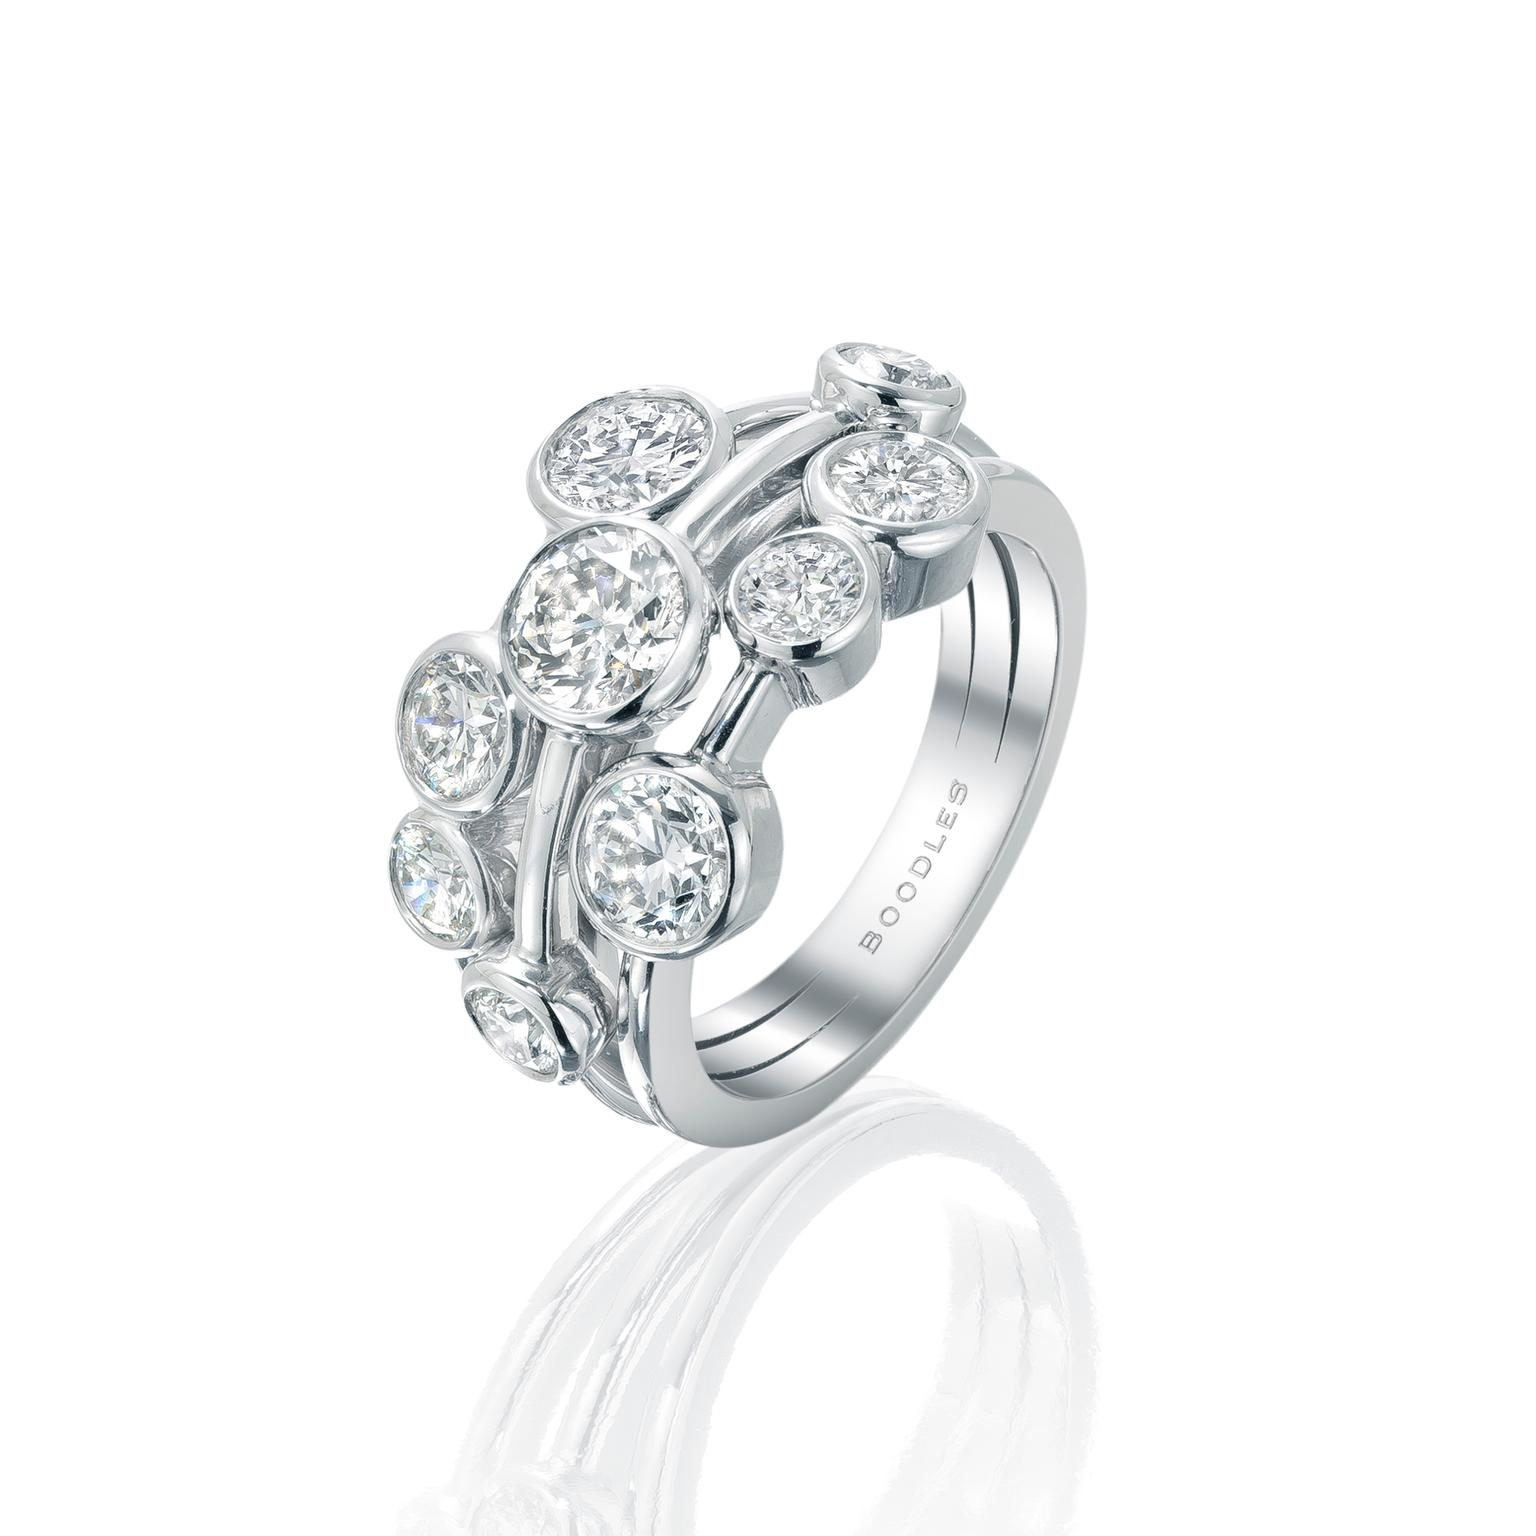 Boodles Raindance platinum and diamond ring